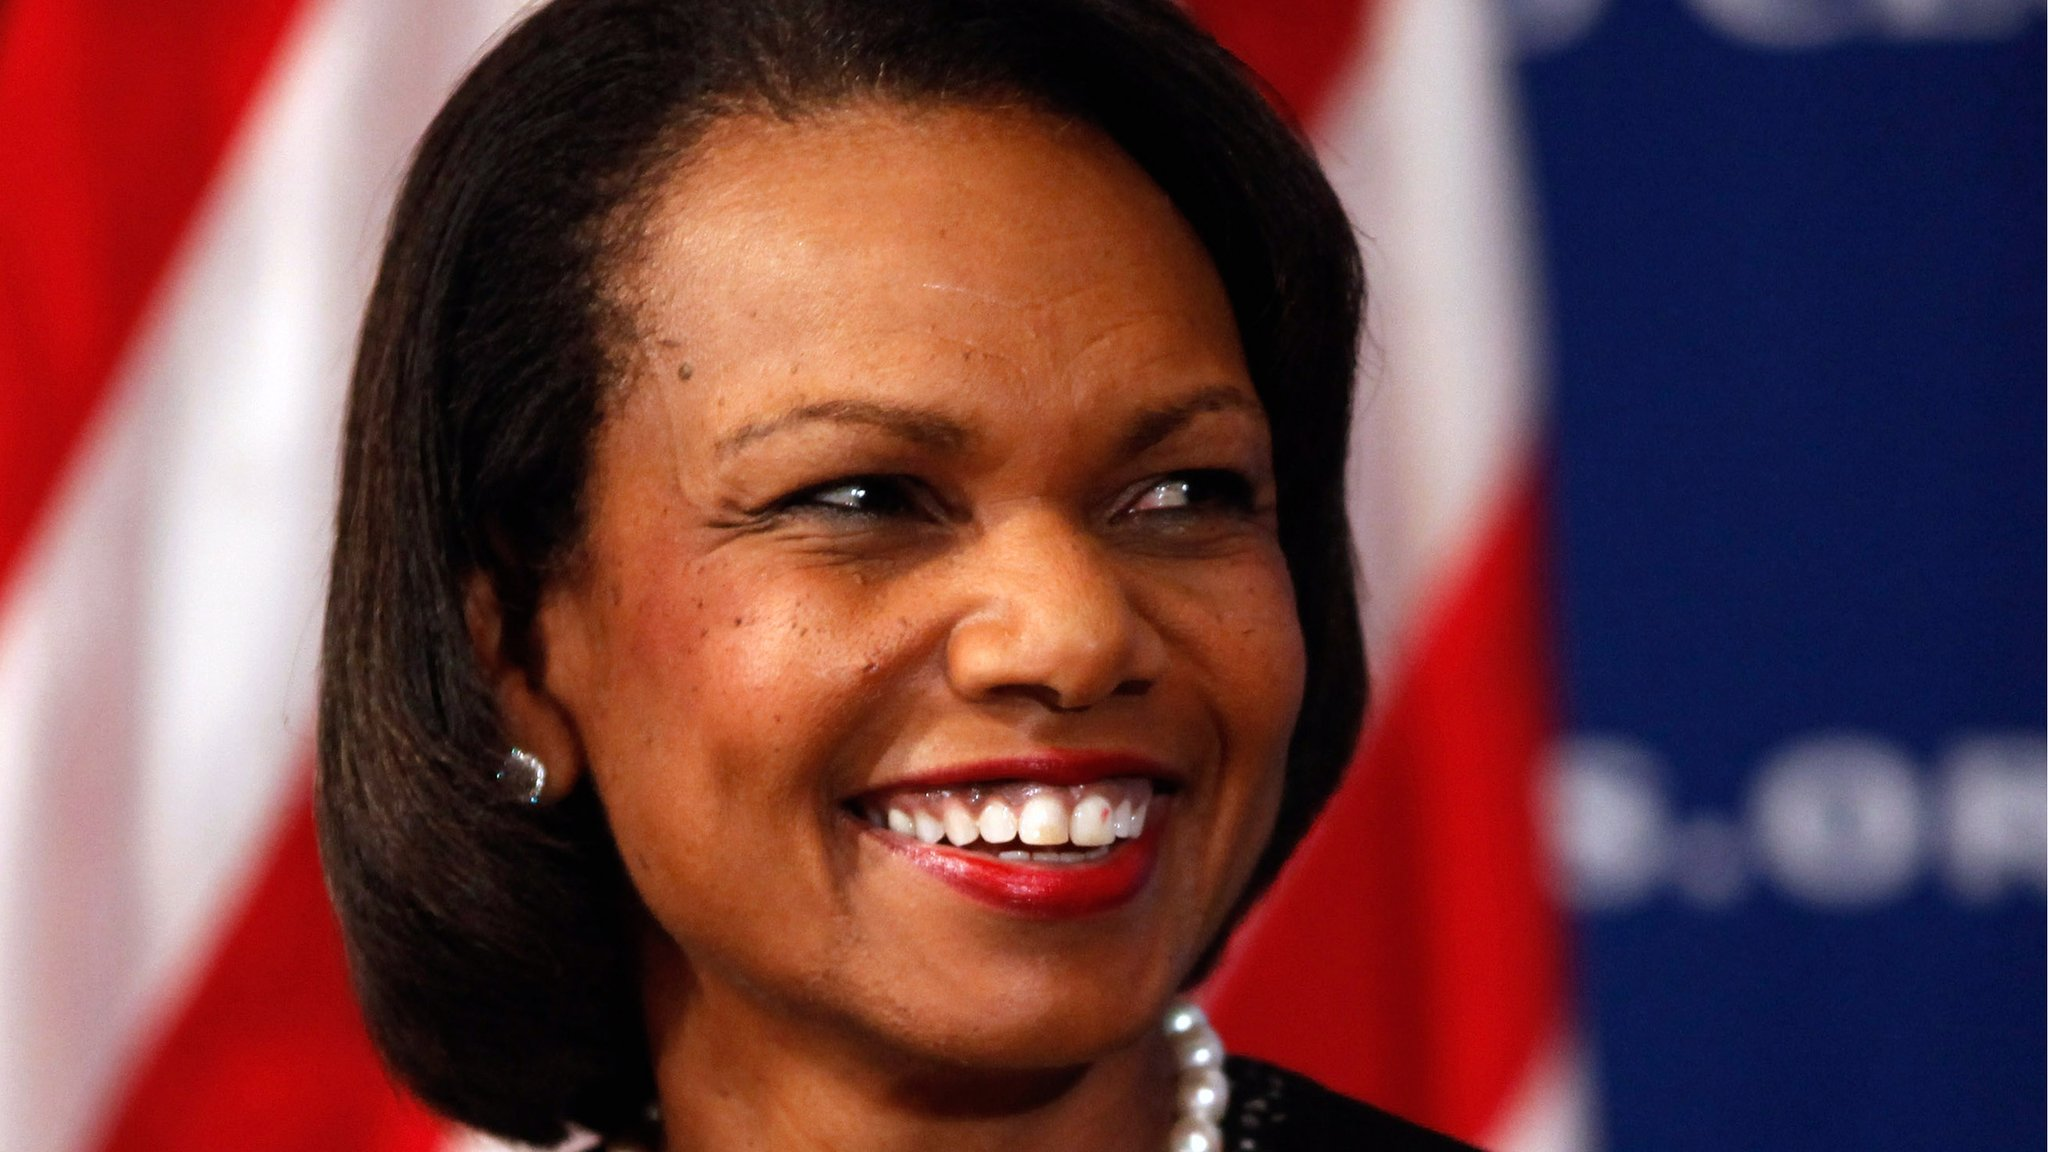 Cleveland Browns & Condoleezza Rice play down talk of head coach role